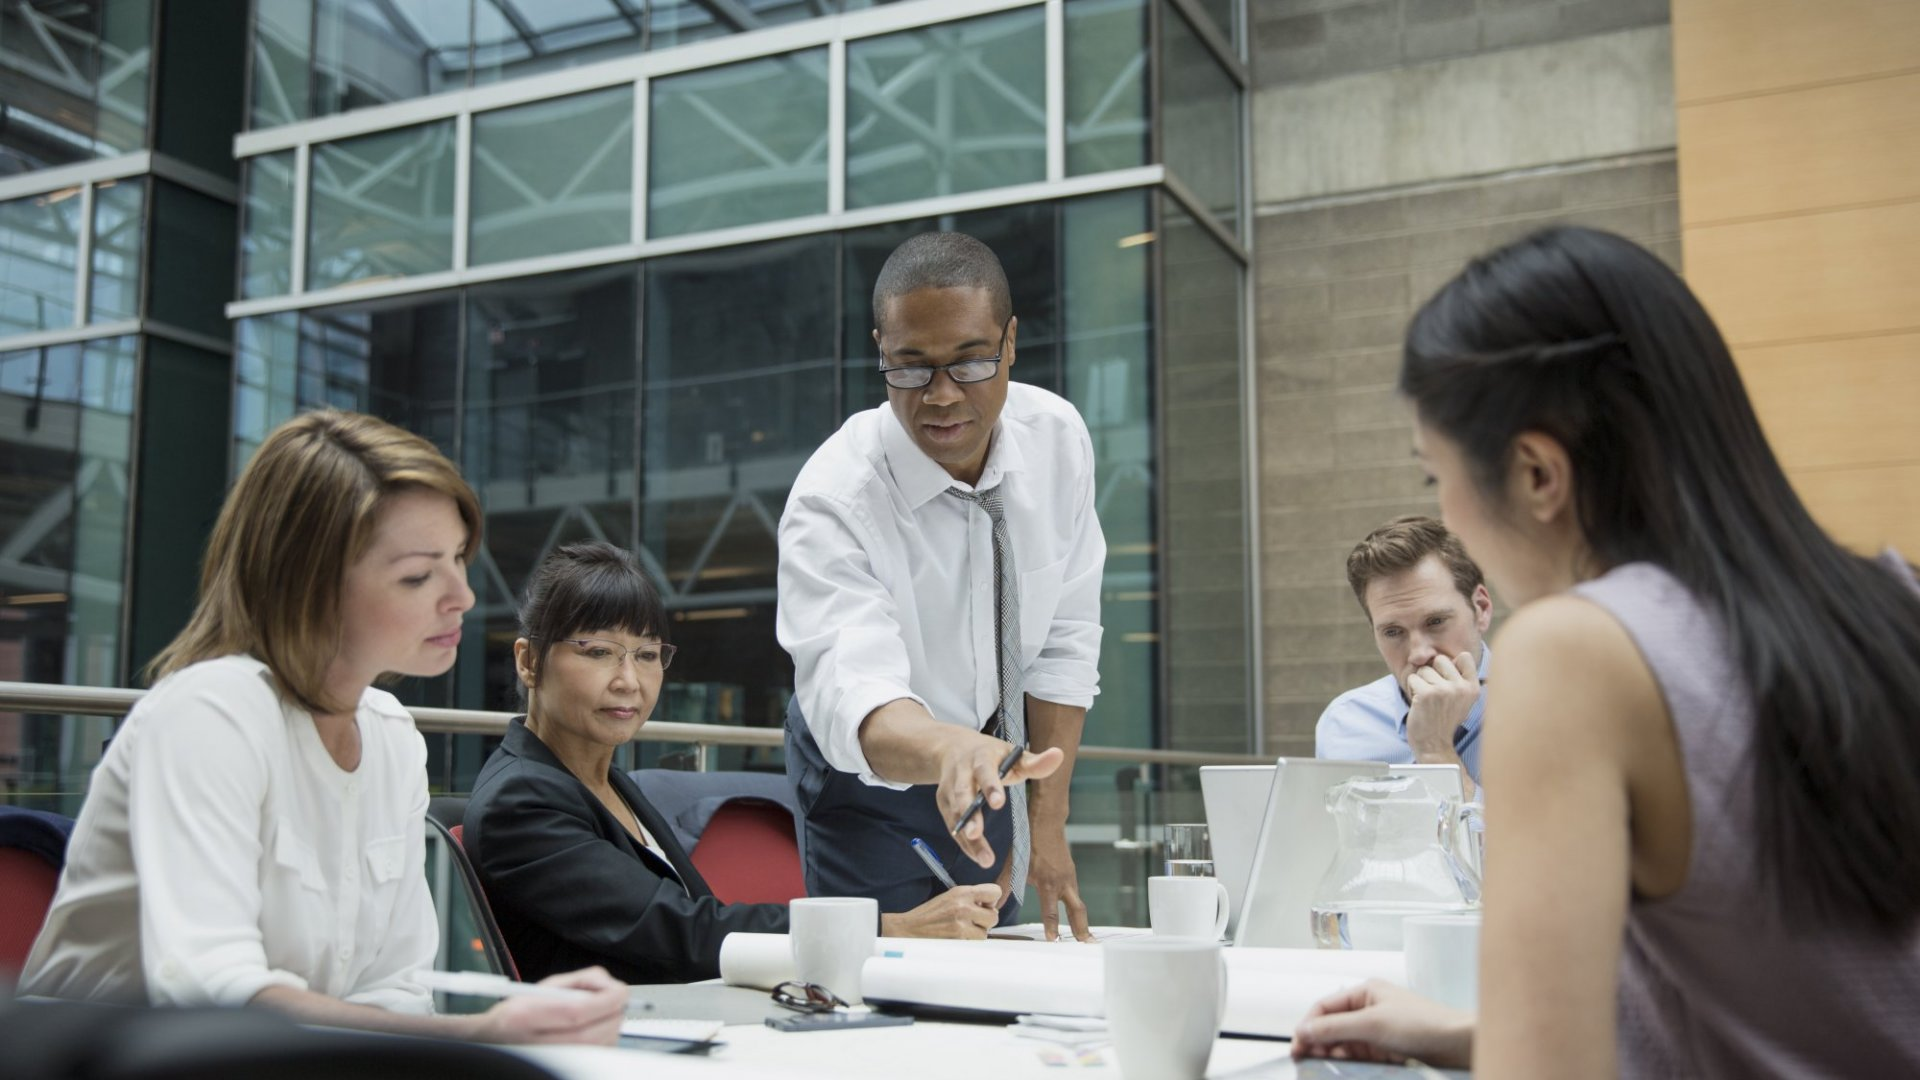 5 Ways the Best Leaders Attract and Keep Top Talent